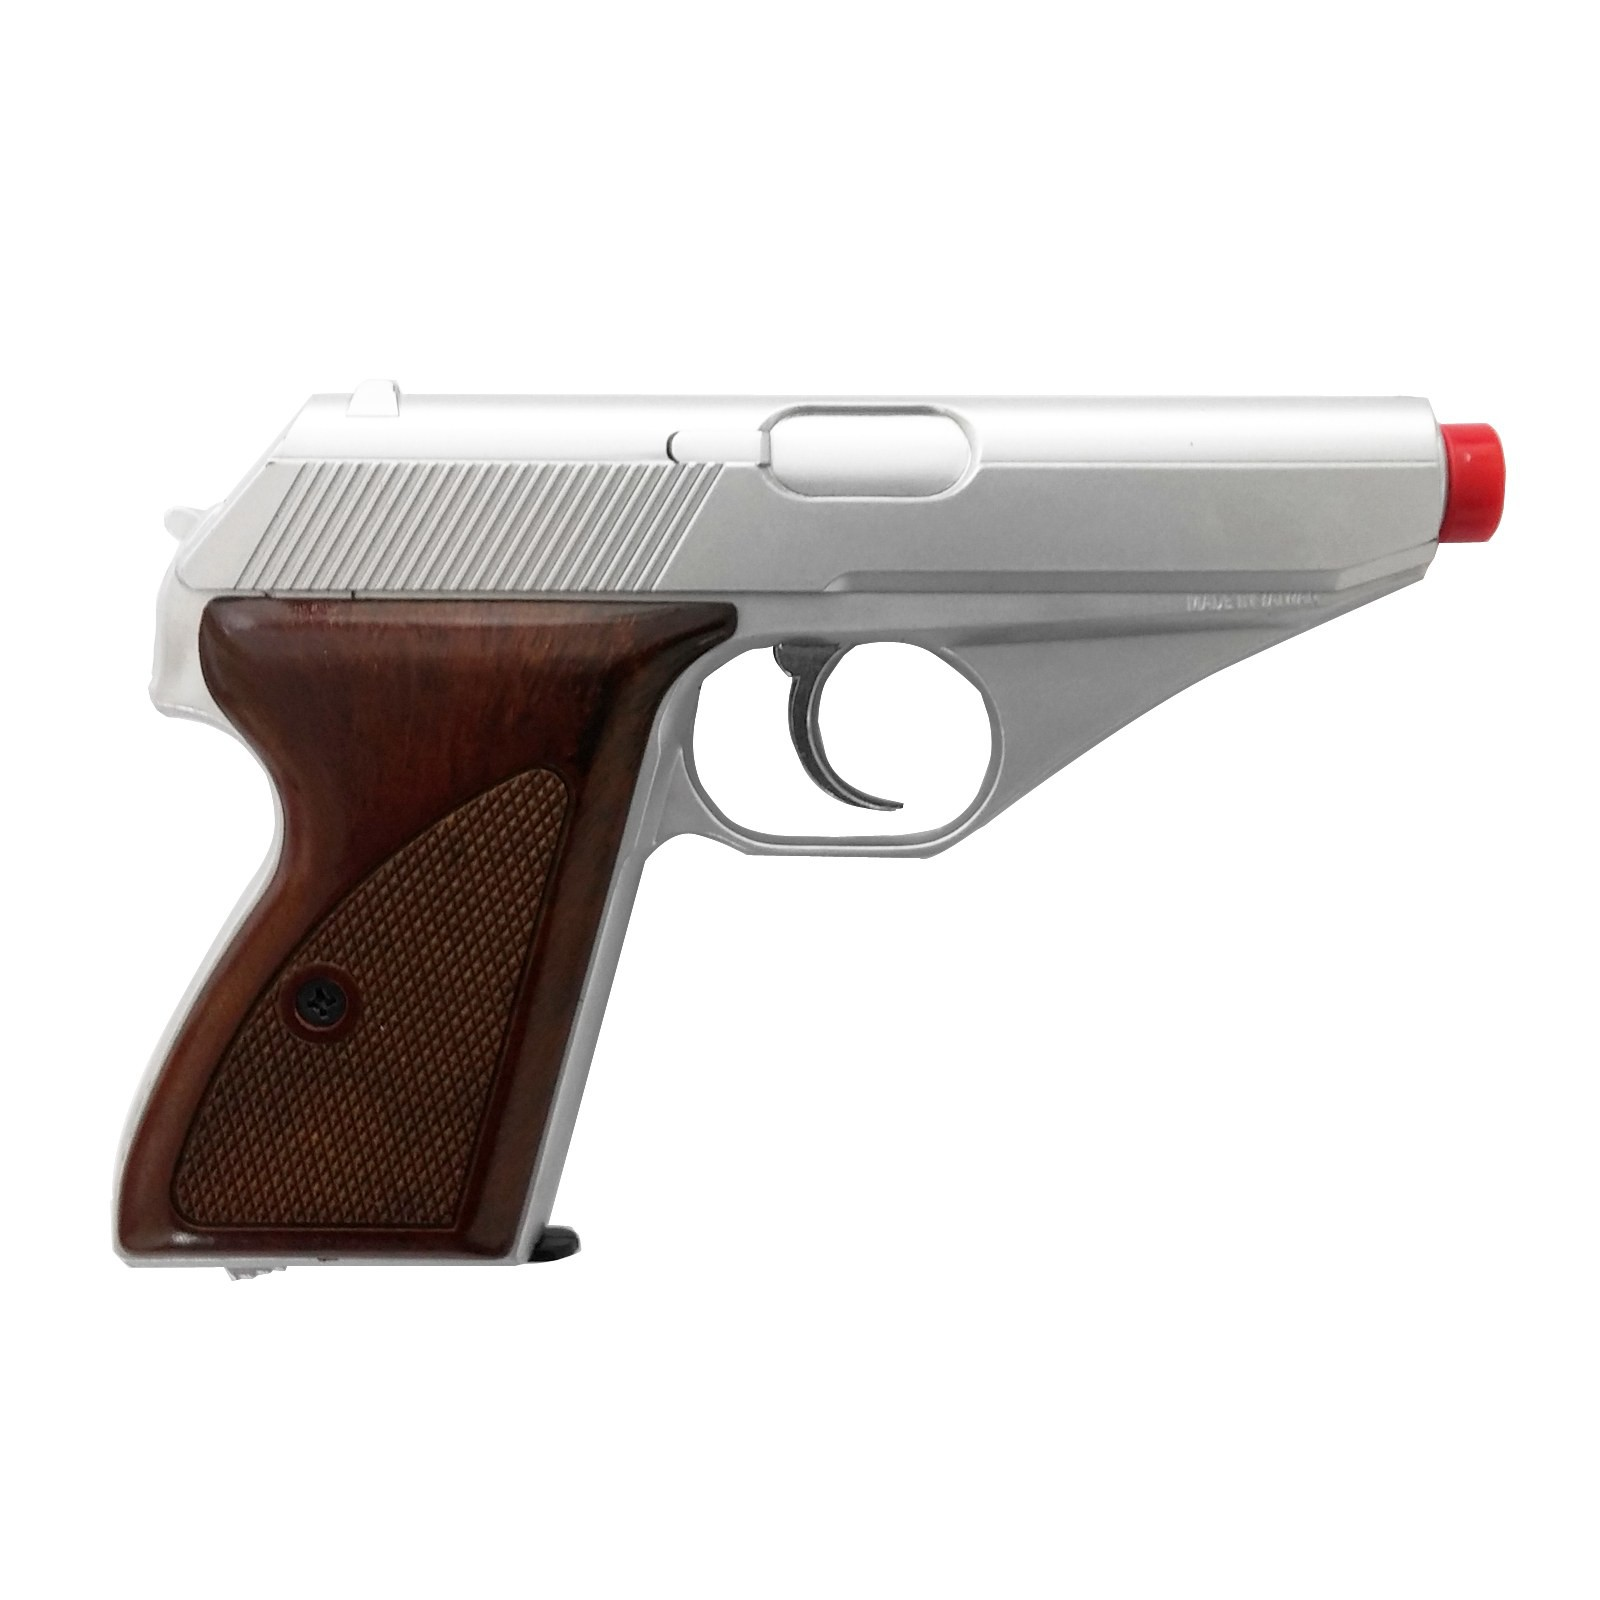 Pistola Mauser Silver a Green Gas in Abs HG 106S per Softair Walther Keymore